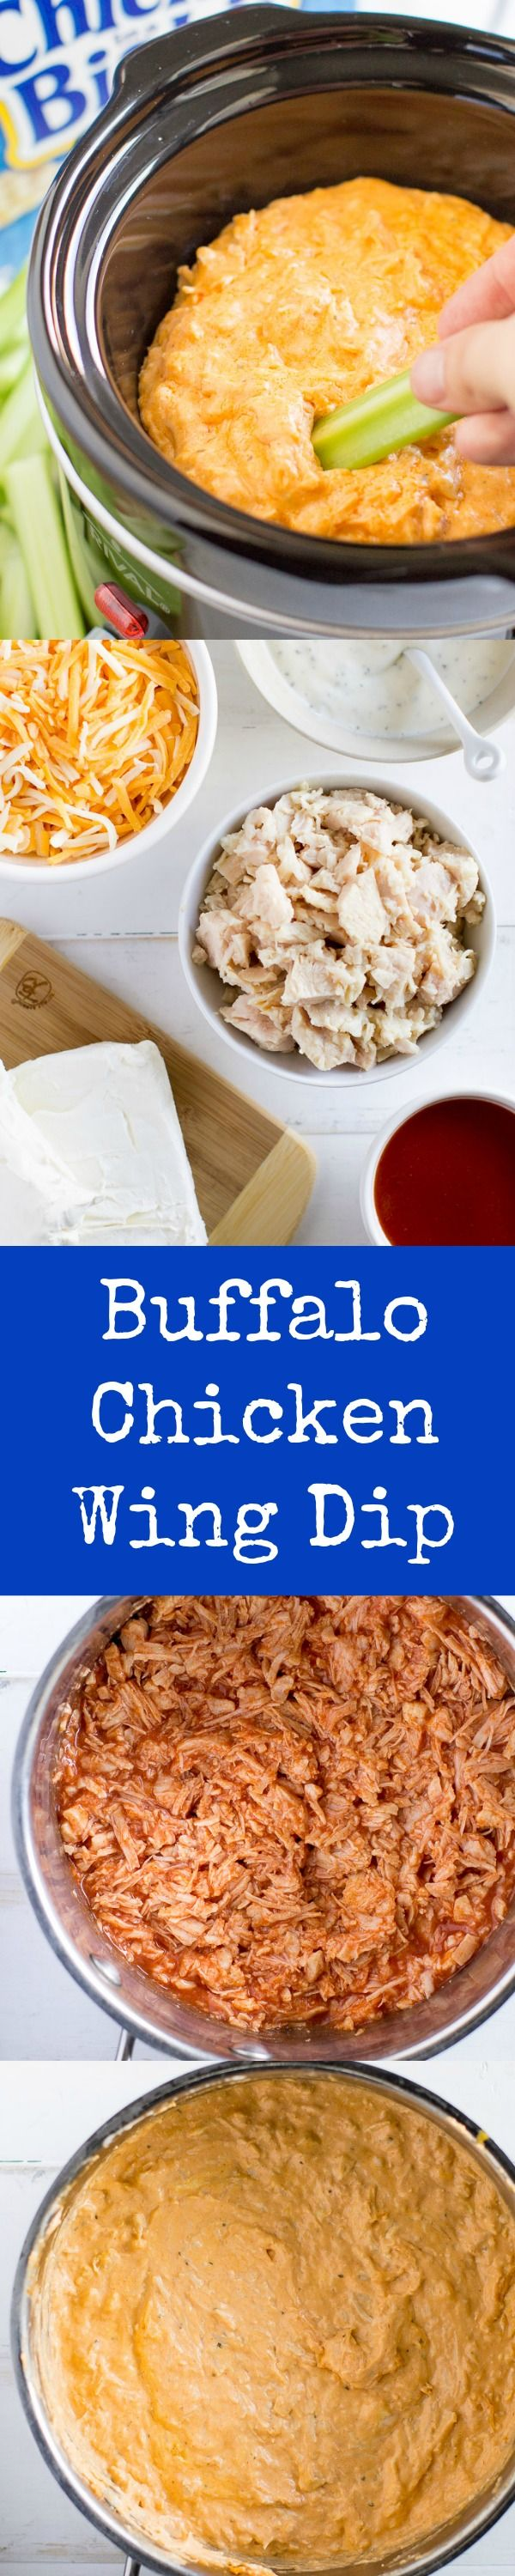 My family LOVES this recipe for Buffalo Chicken Wing Dip! We ALWAYS make it for parties. It's hot, spicy, cool, and creamy all at once!